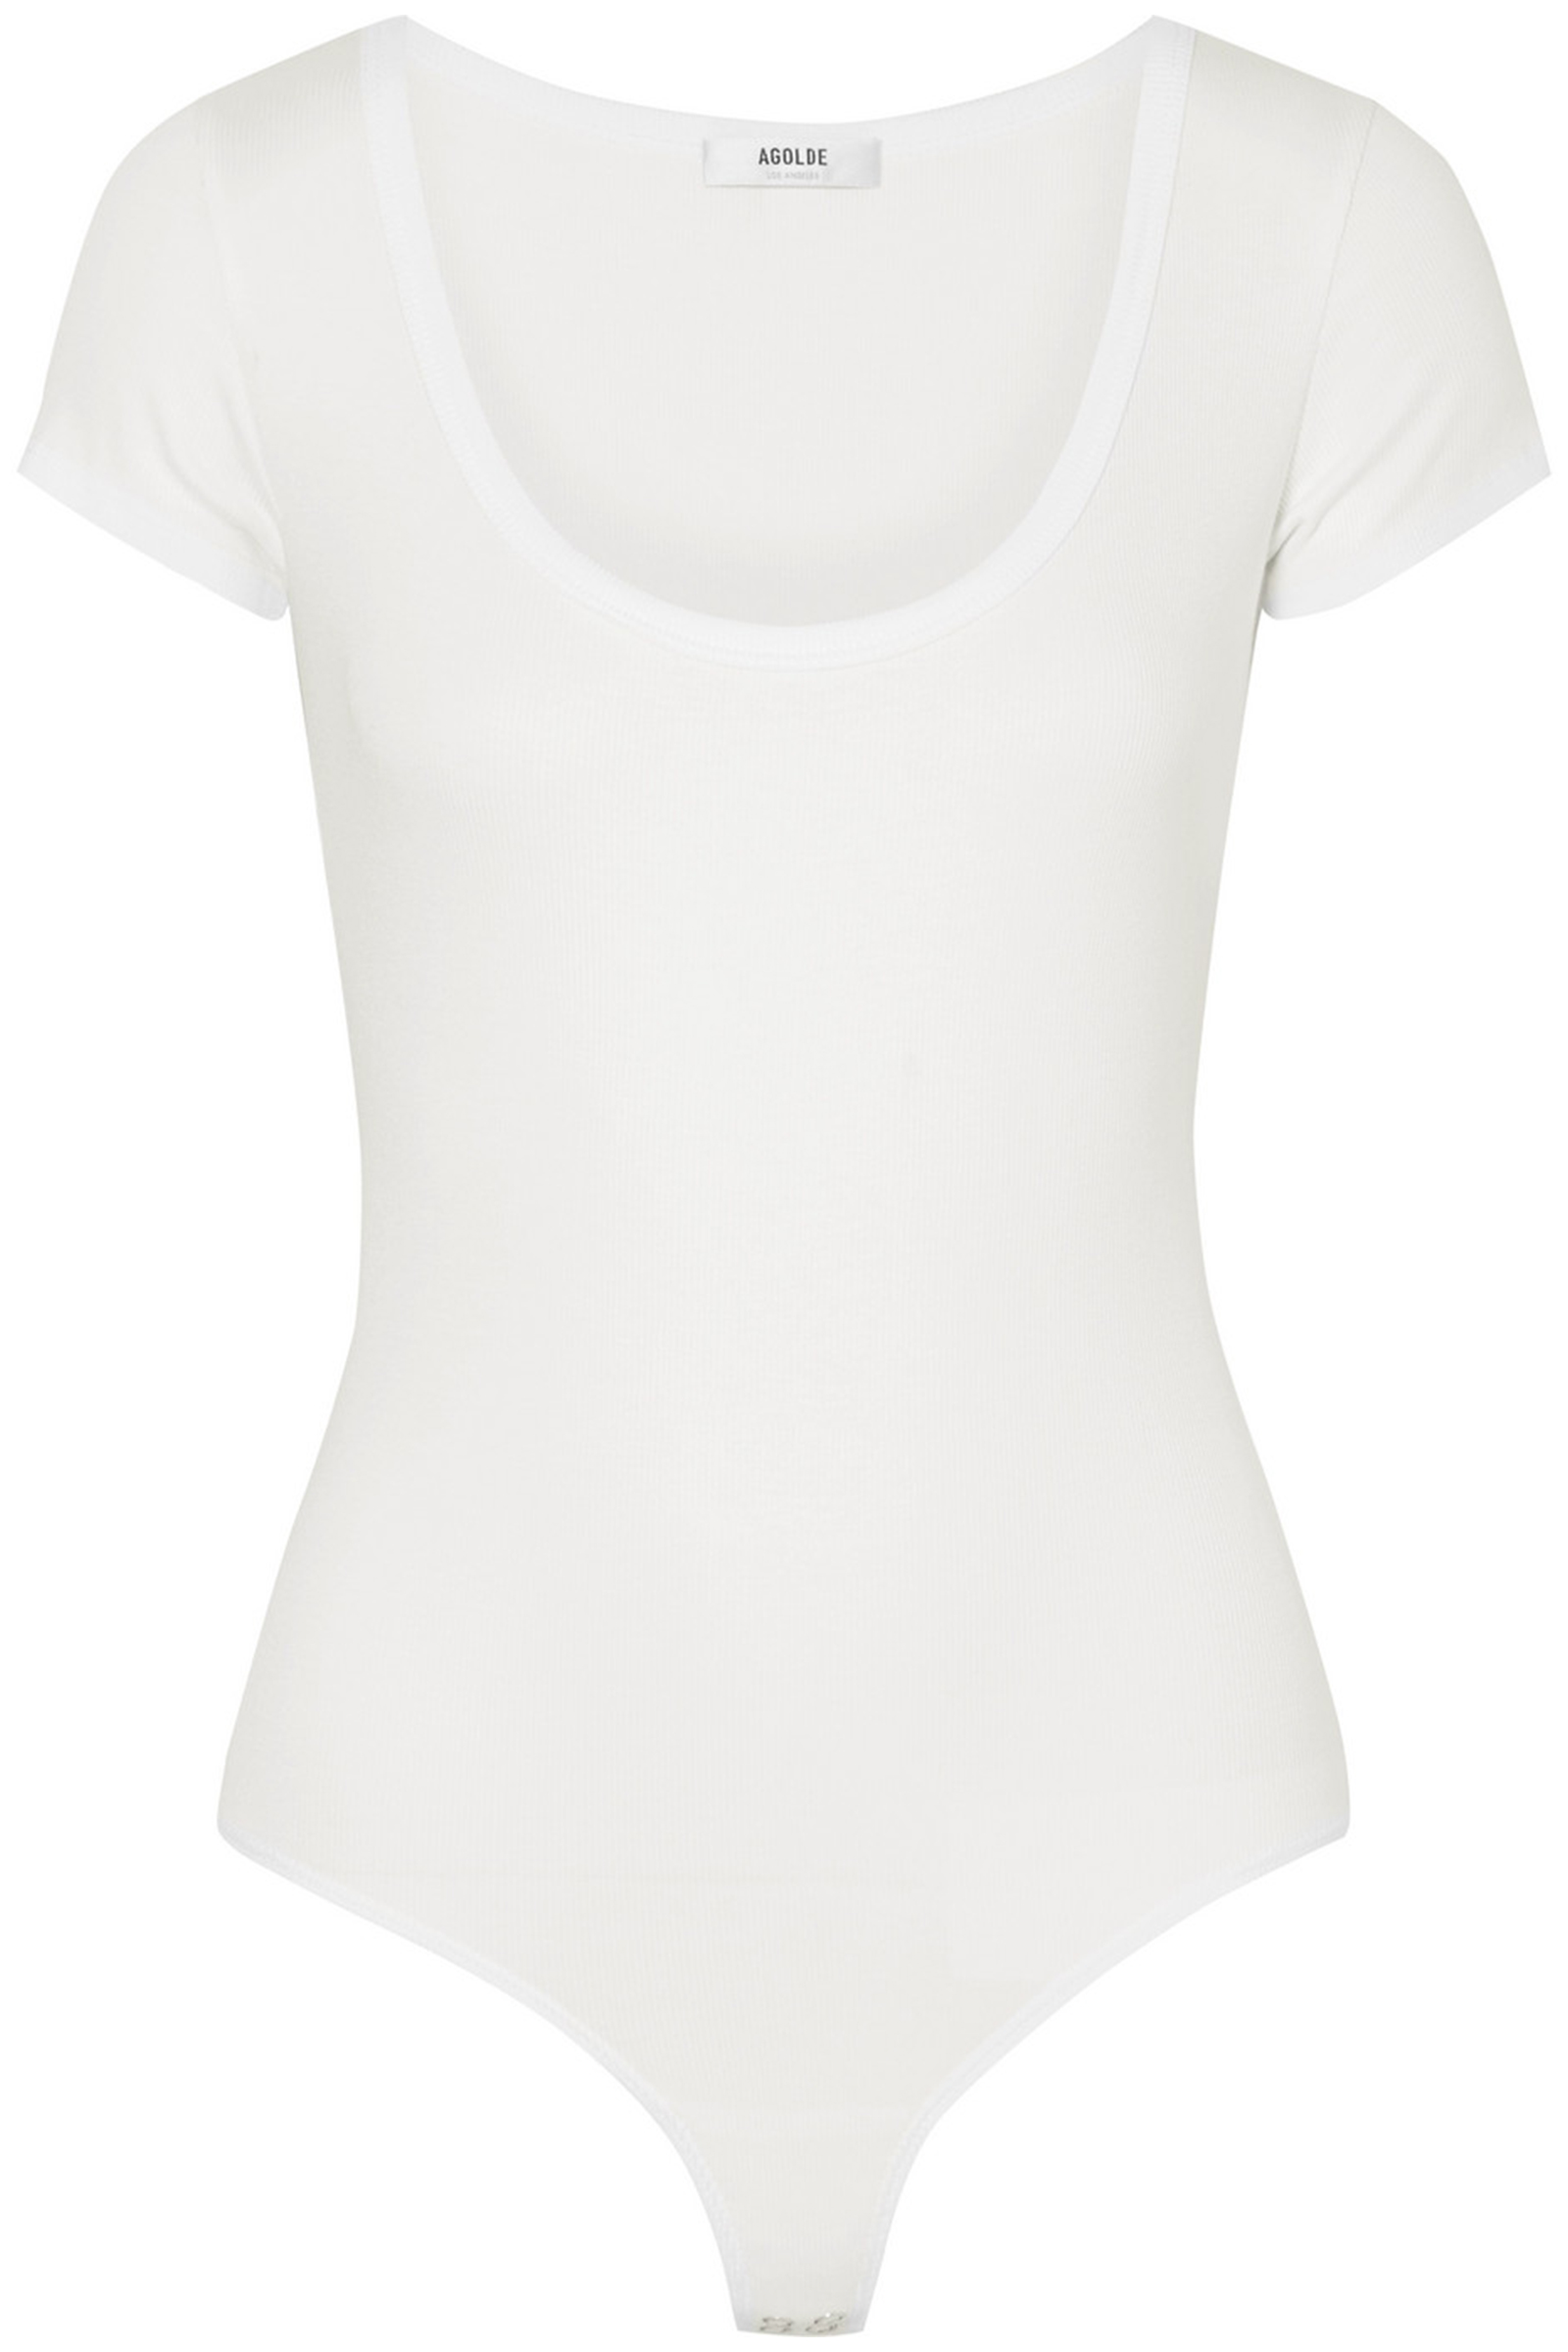 AGOLDE-White-Stretch-Jersey-Bodysuit